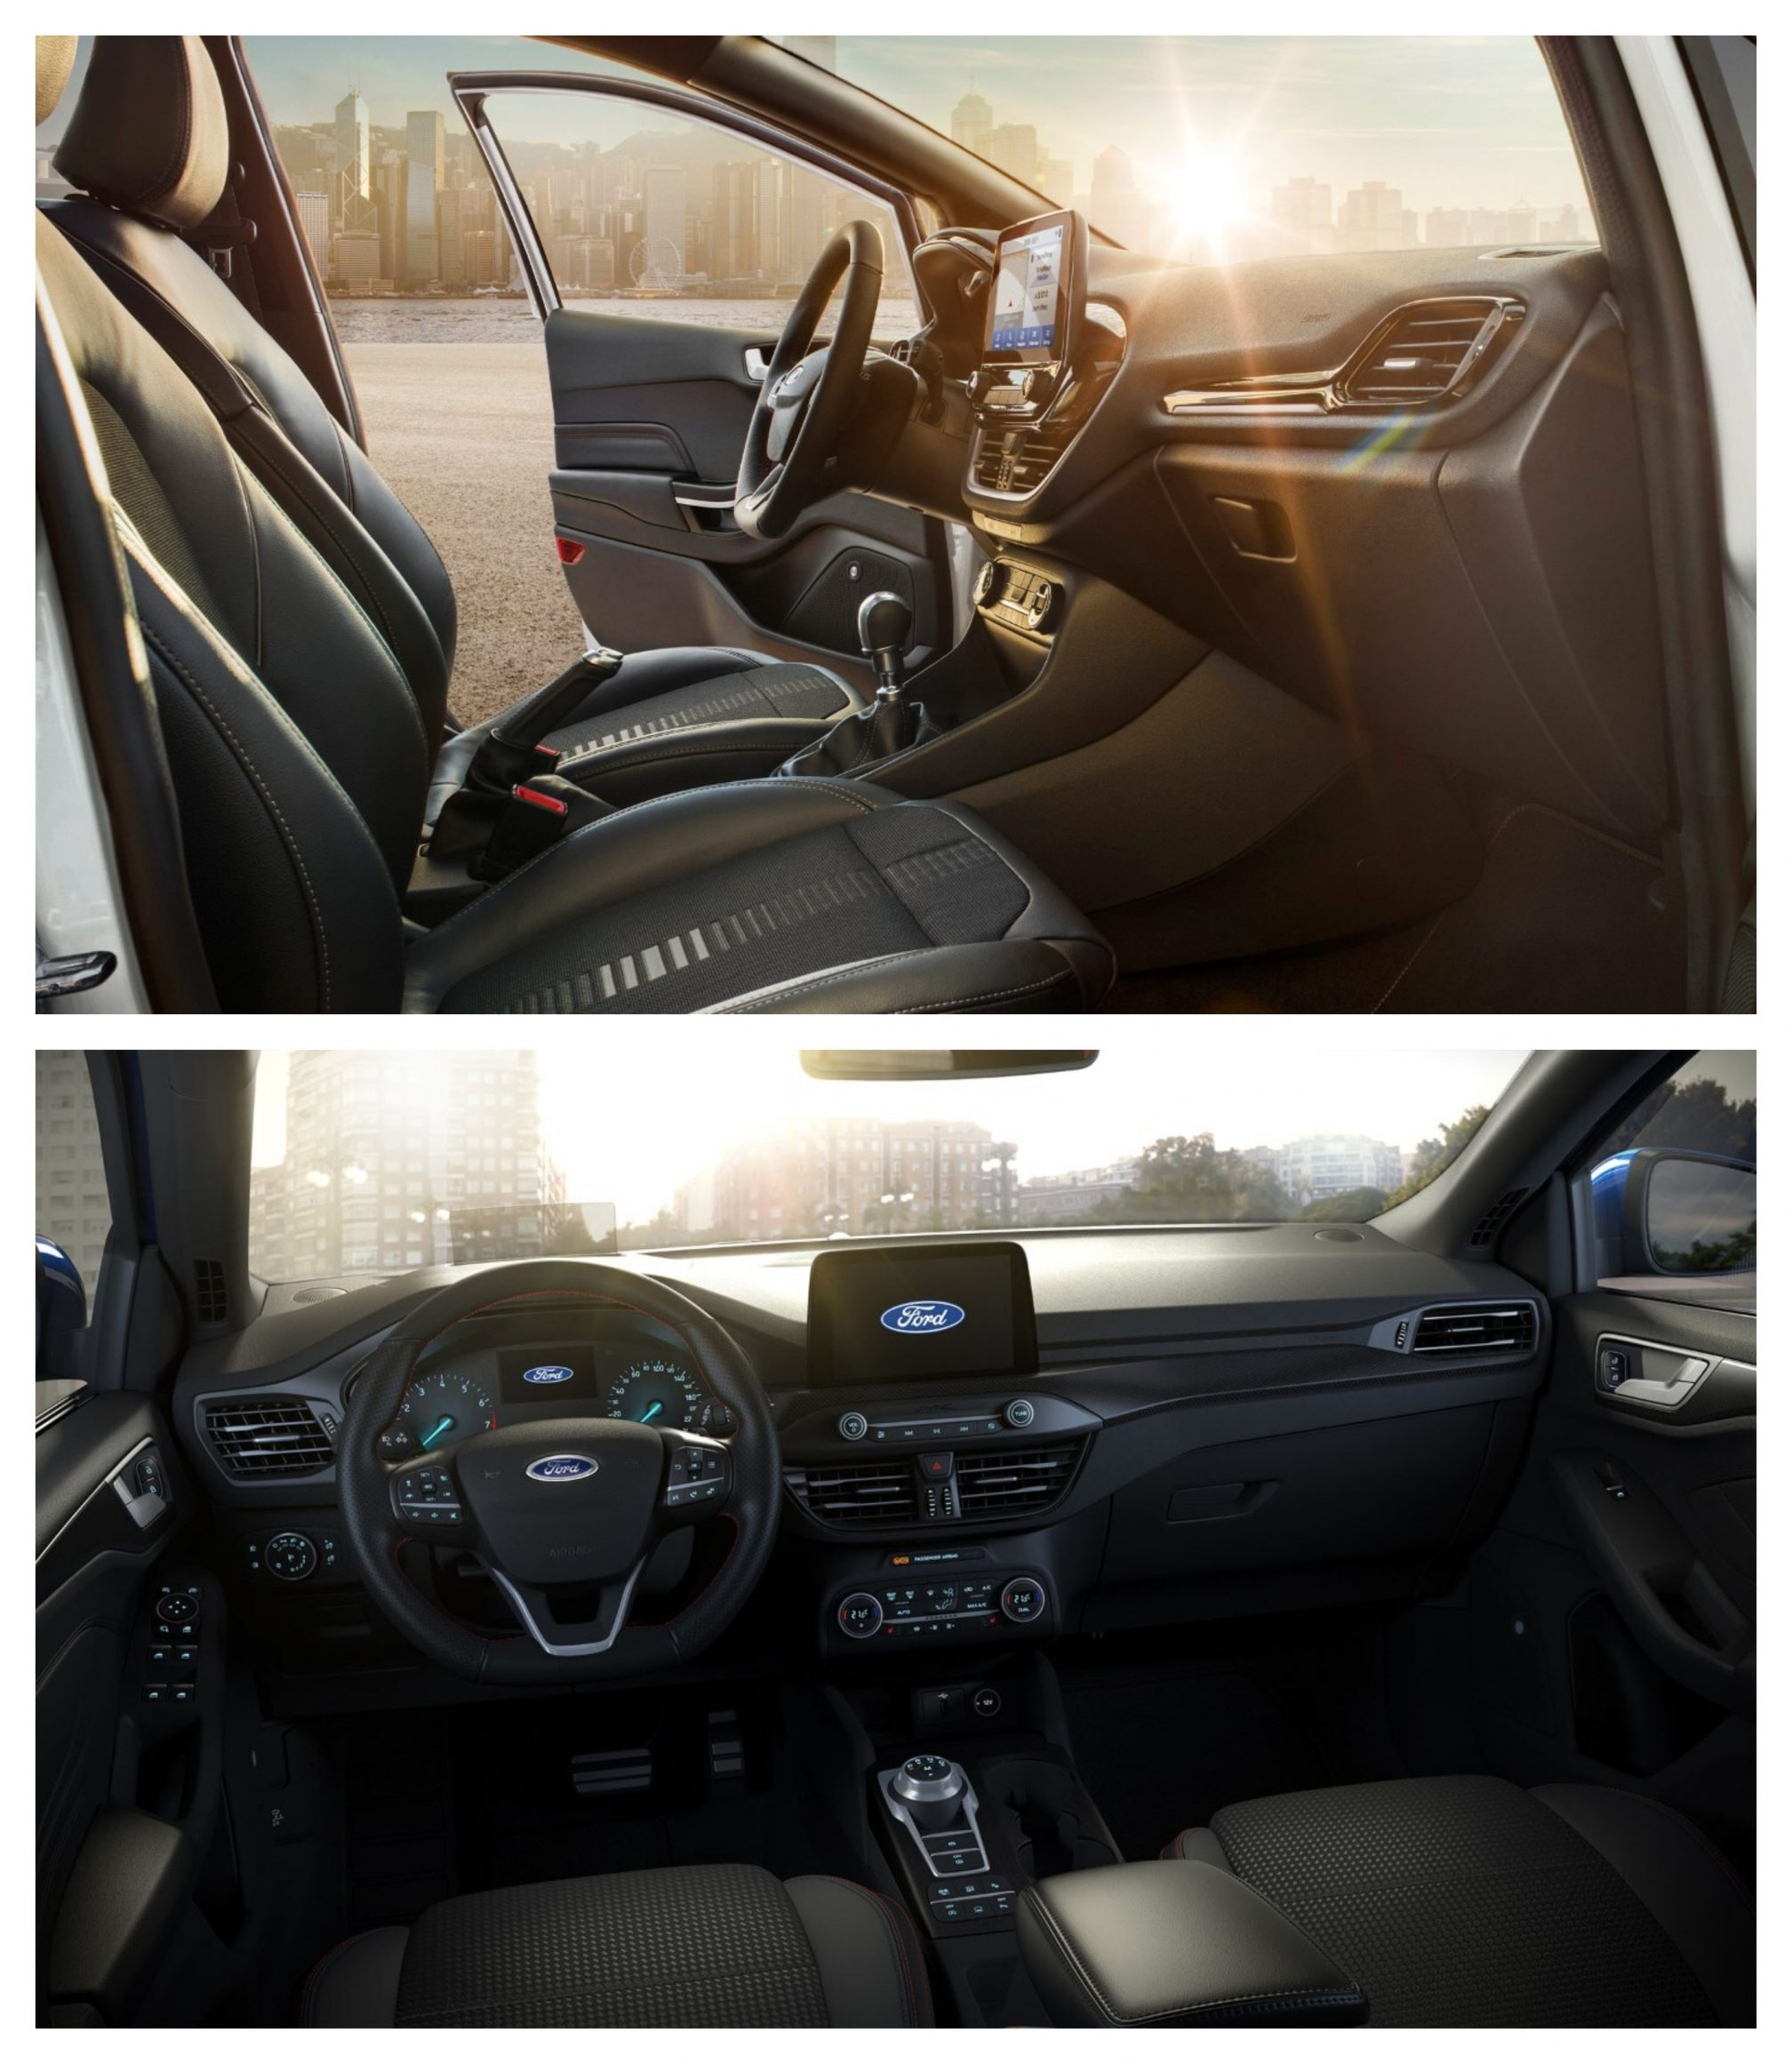 Ford Fiesta Vs Ford Focus - interior design and space